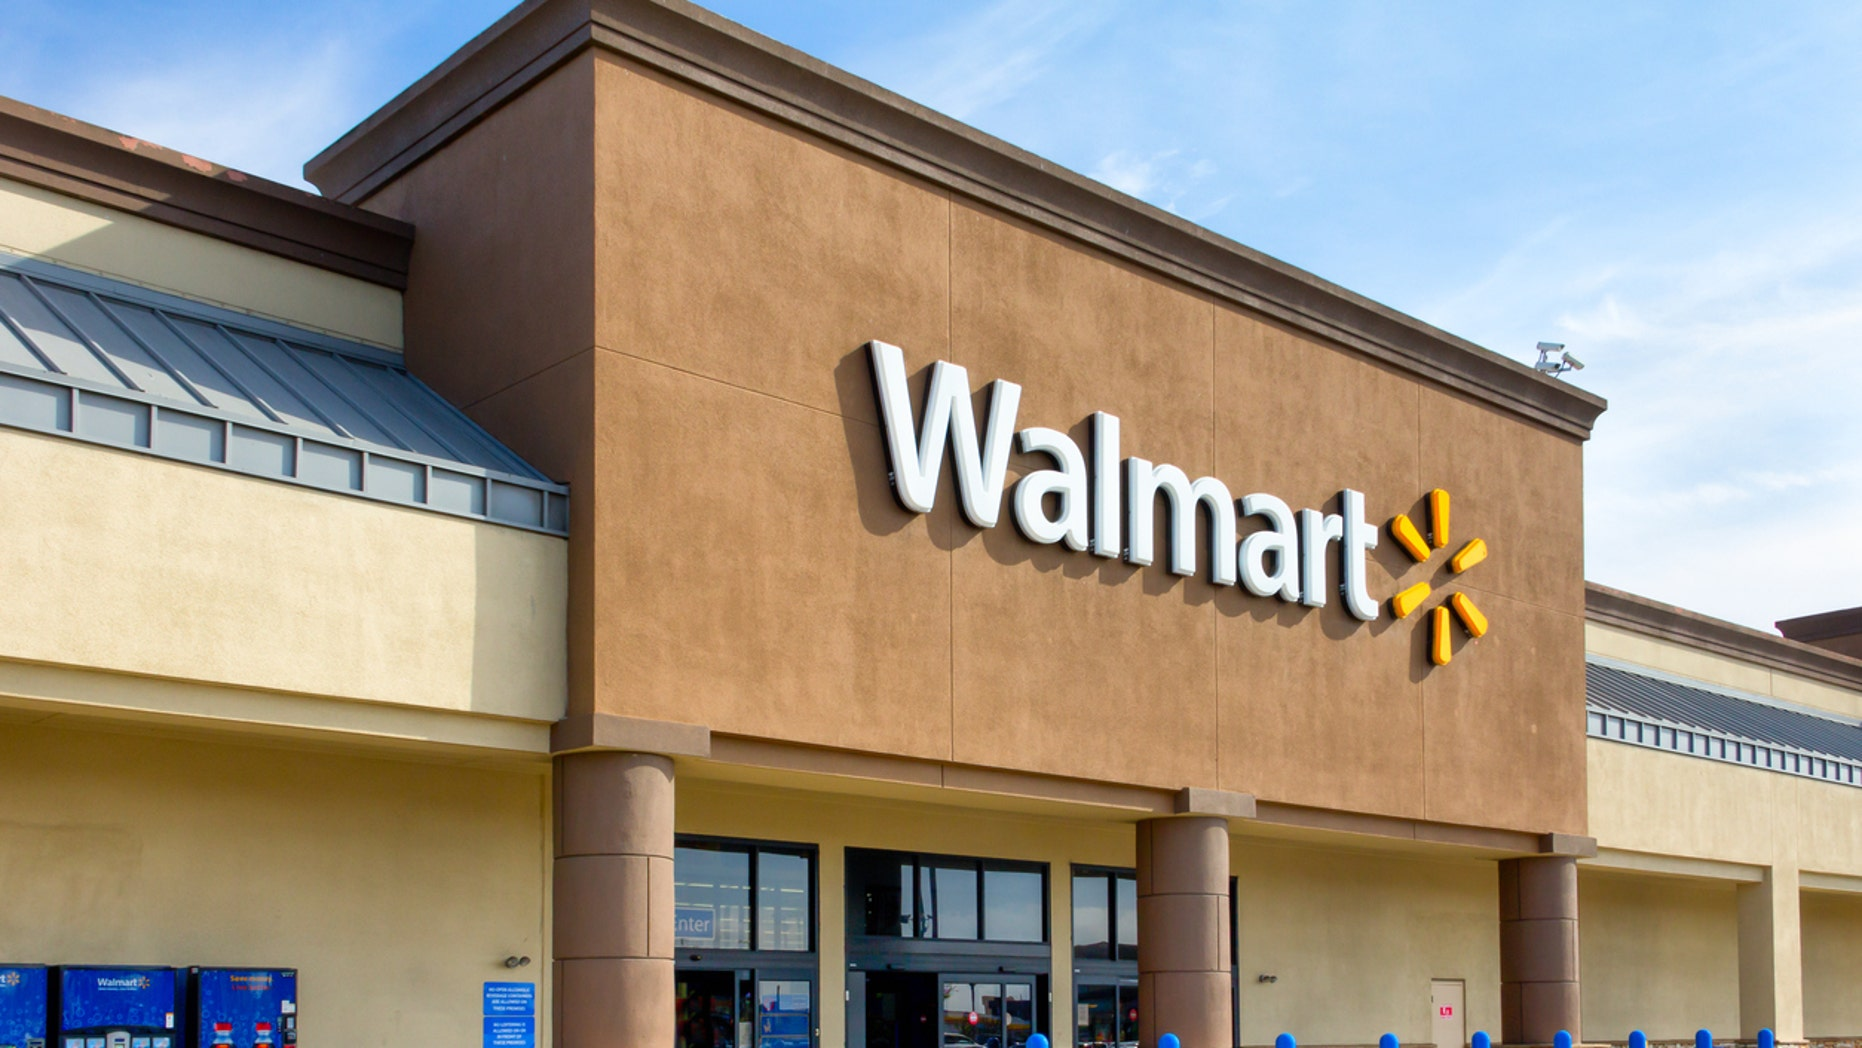 Walmart's efforts to reduce their waste outshone their competitors, earning them a B rating. No supermarket received an A.